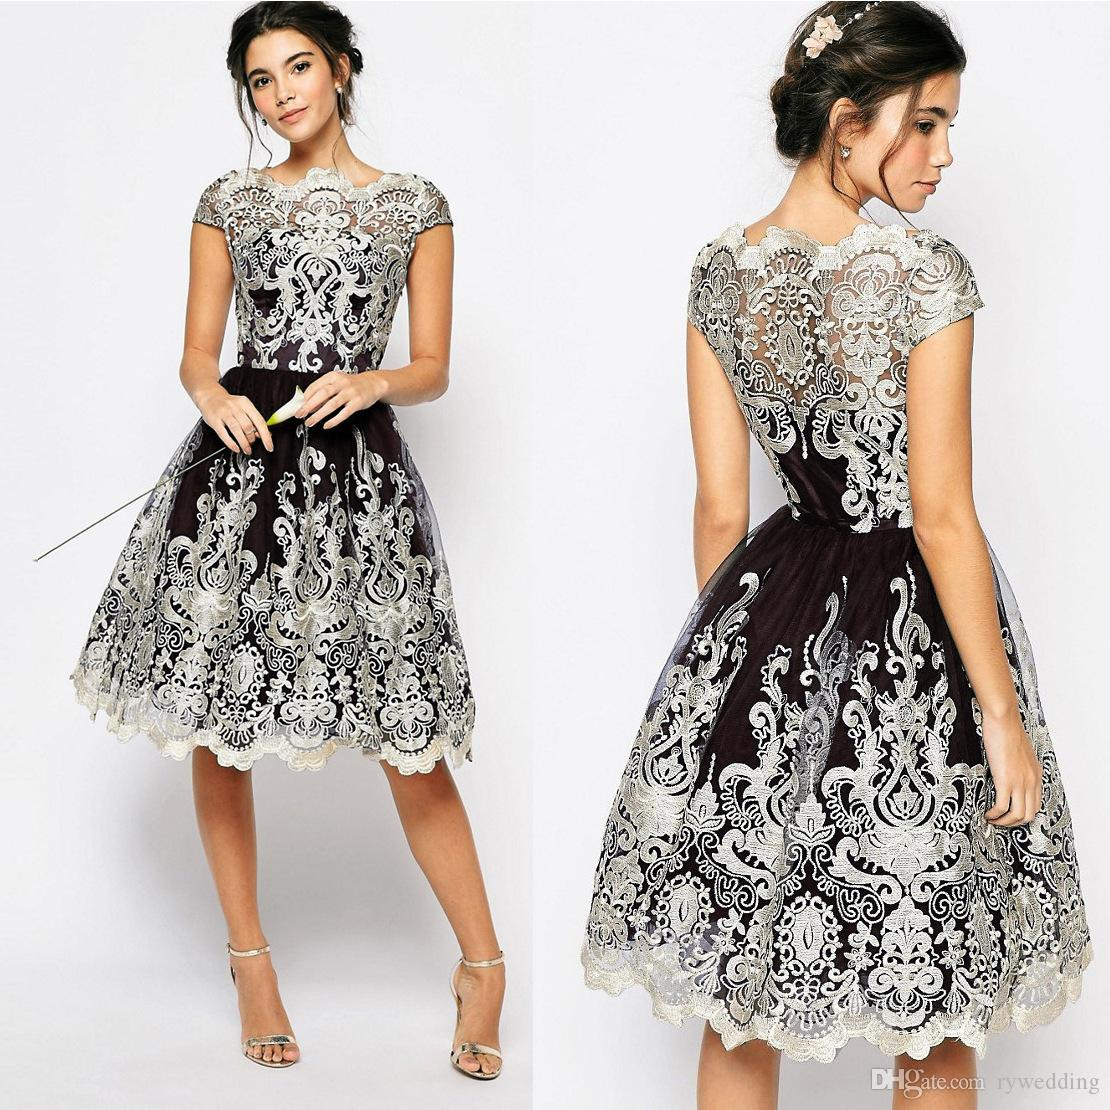 vintage Bateau Lace Dresses mesh Embroidered ball gown beautiful bridesmaid dresses Special Occasion Dresses A-Line knee Length party skirt